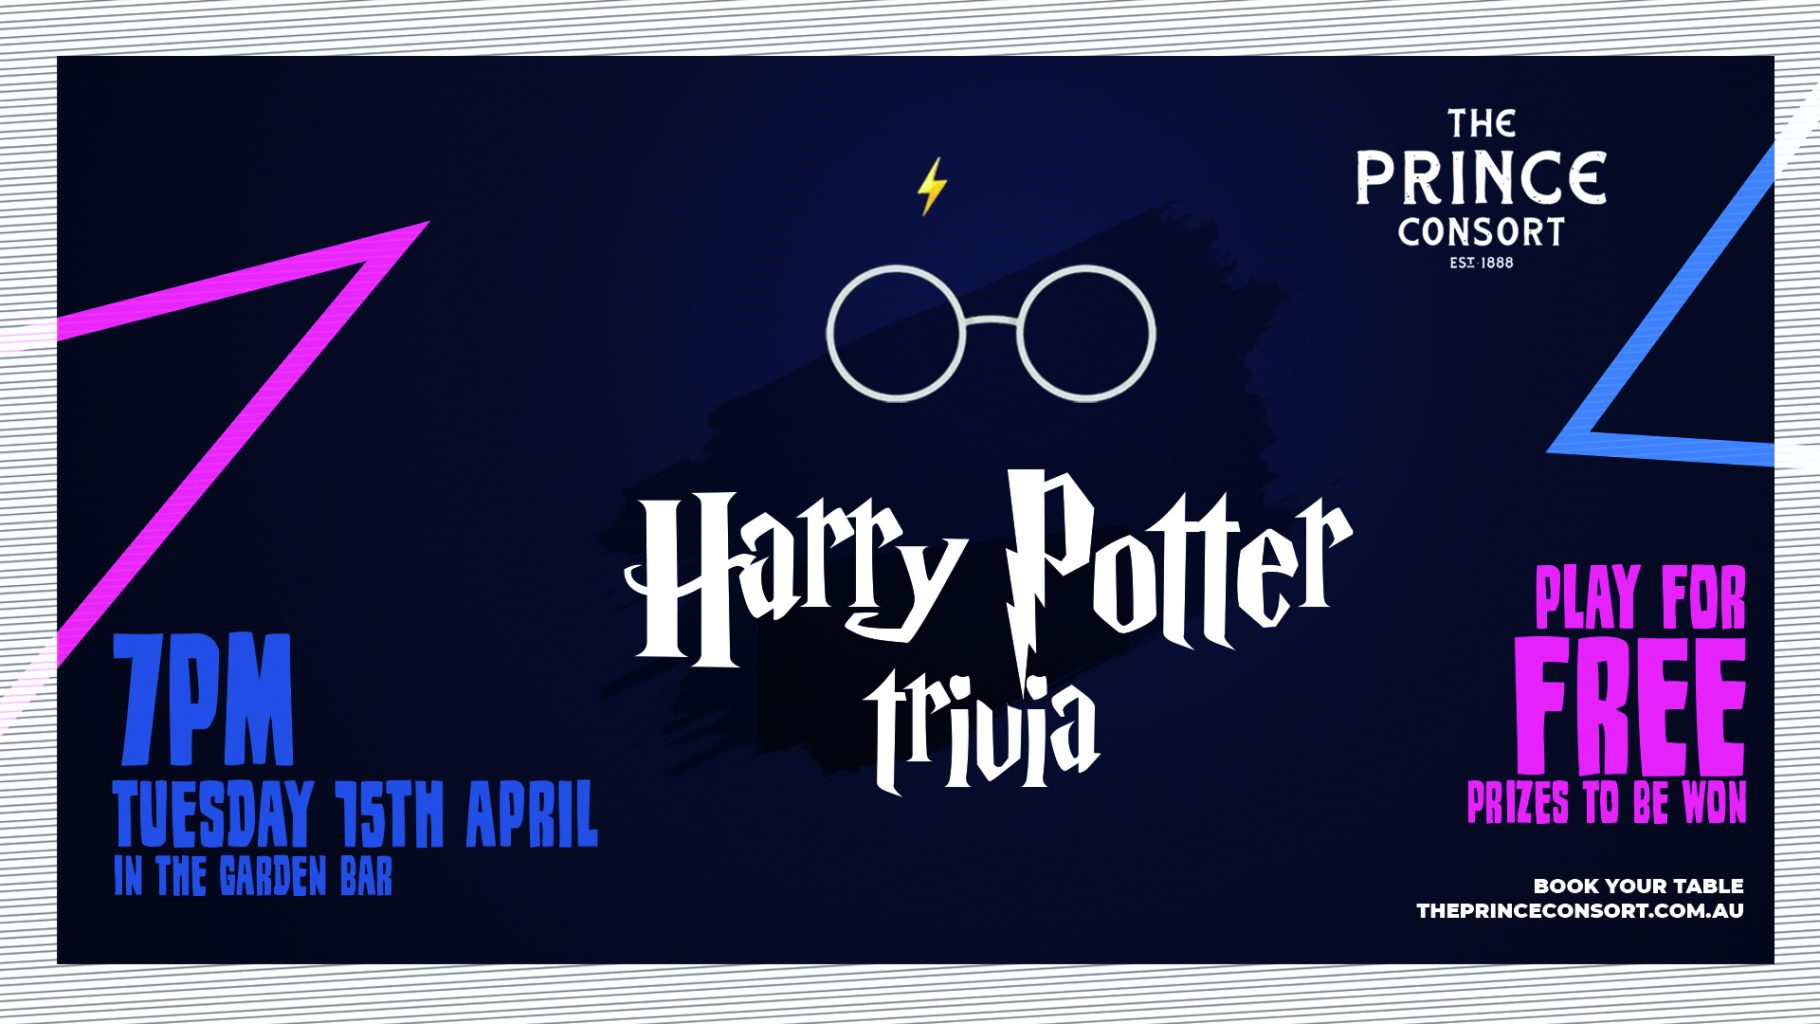 Harry Potter Trivia! Book your table now!